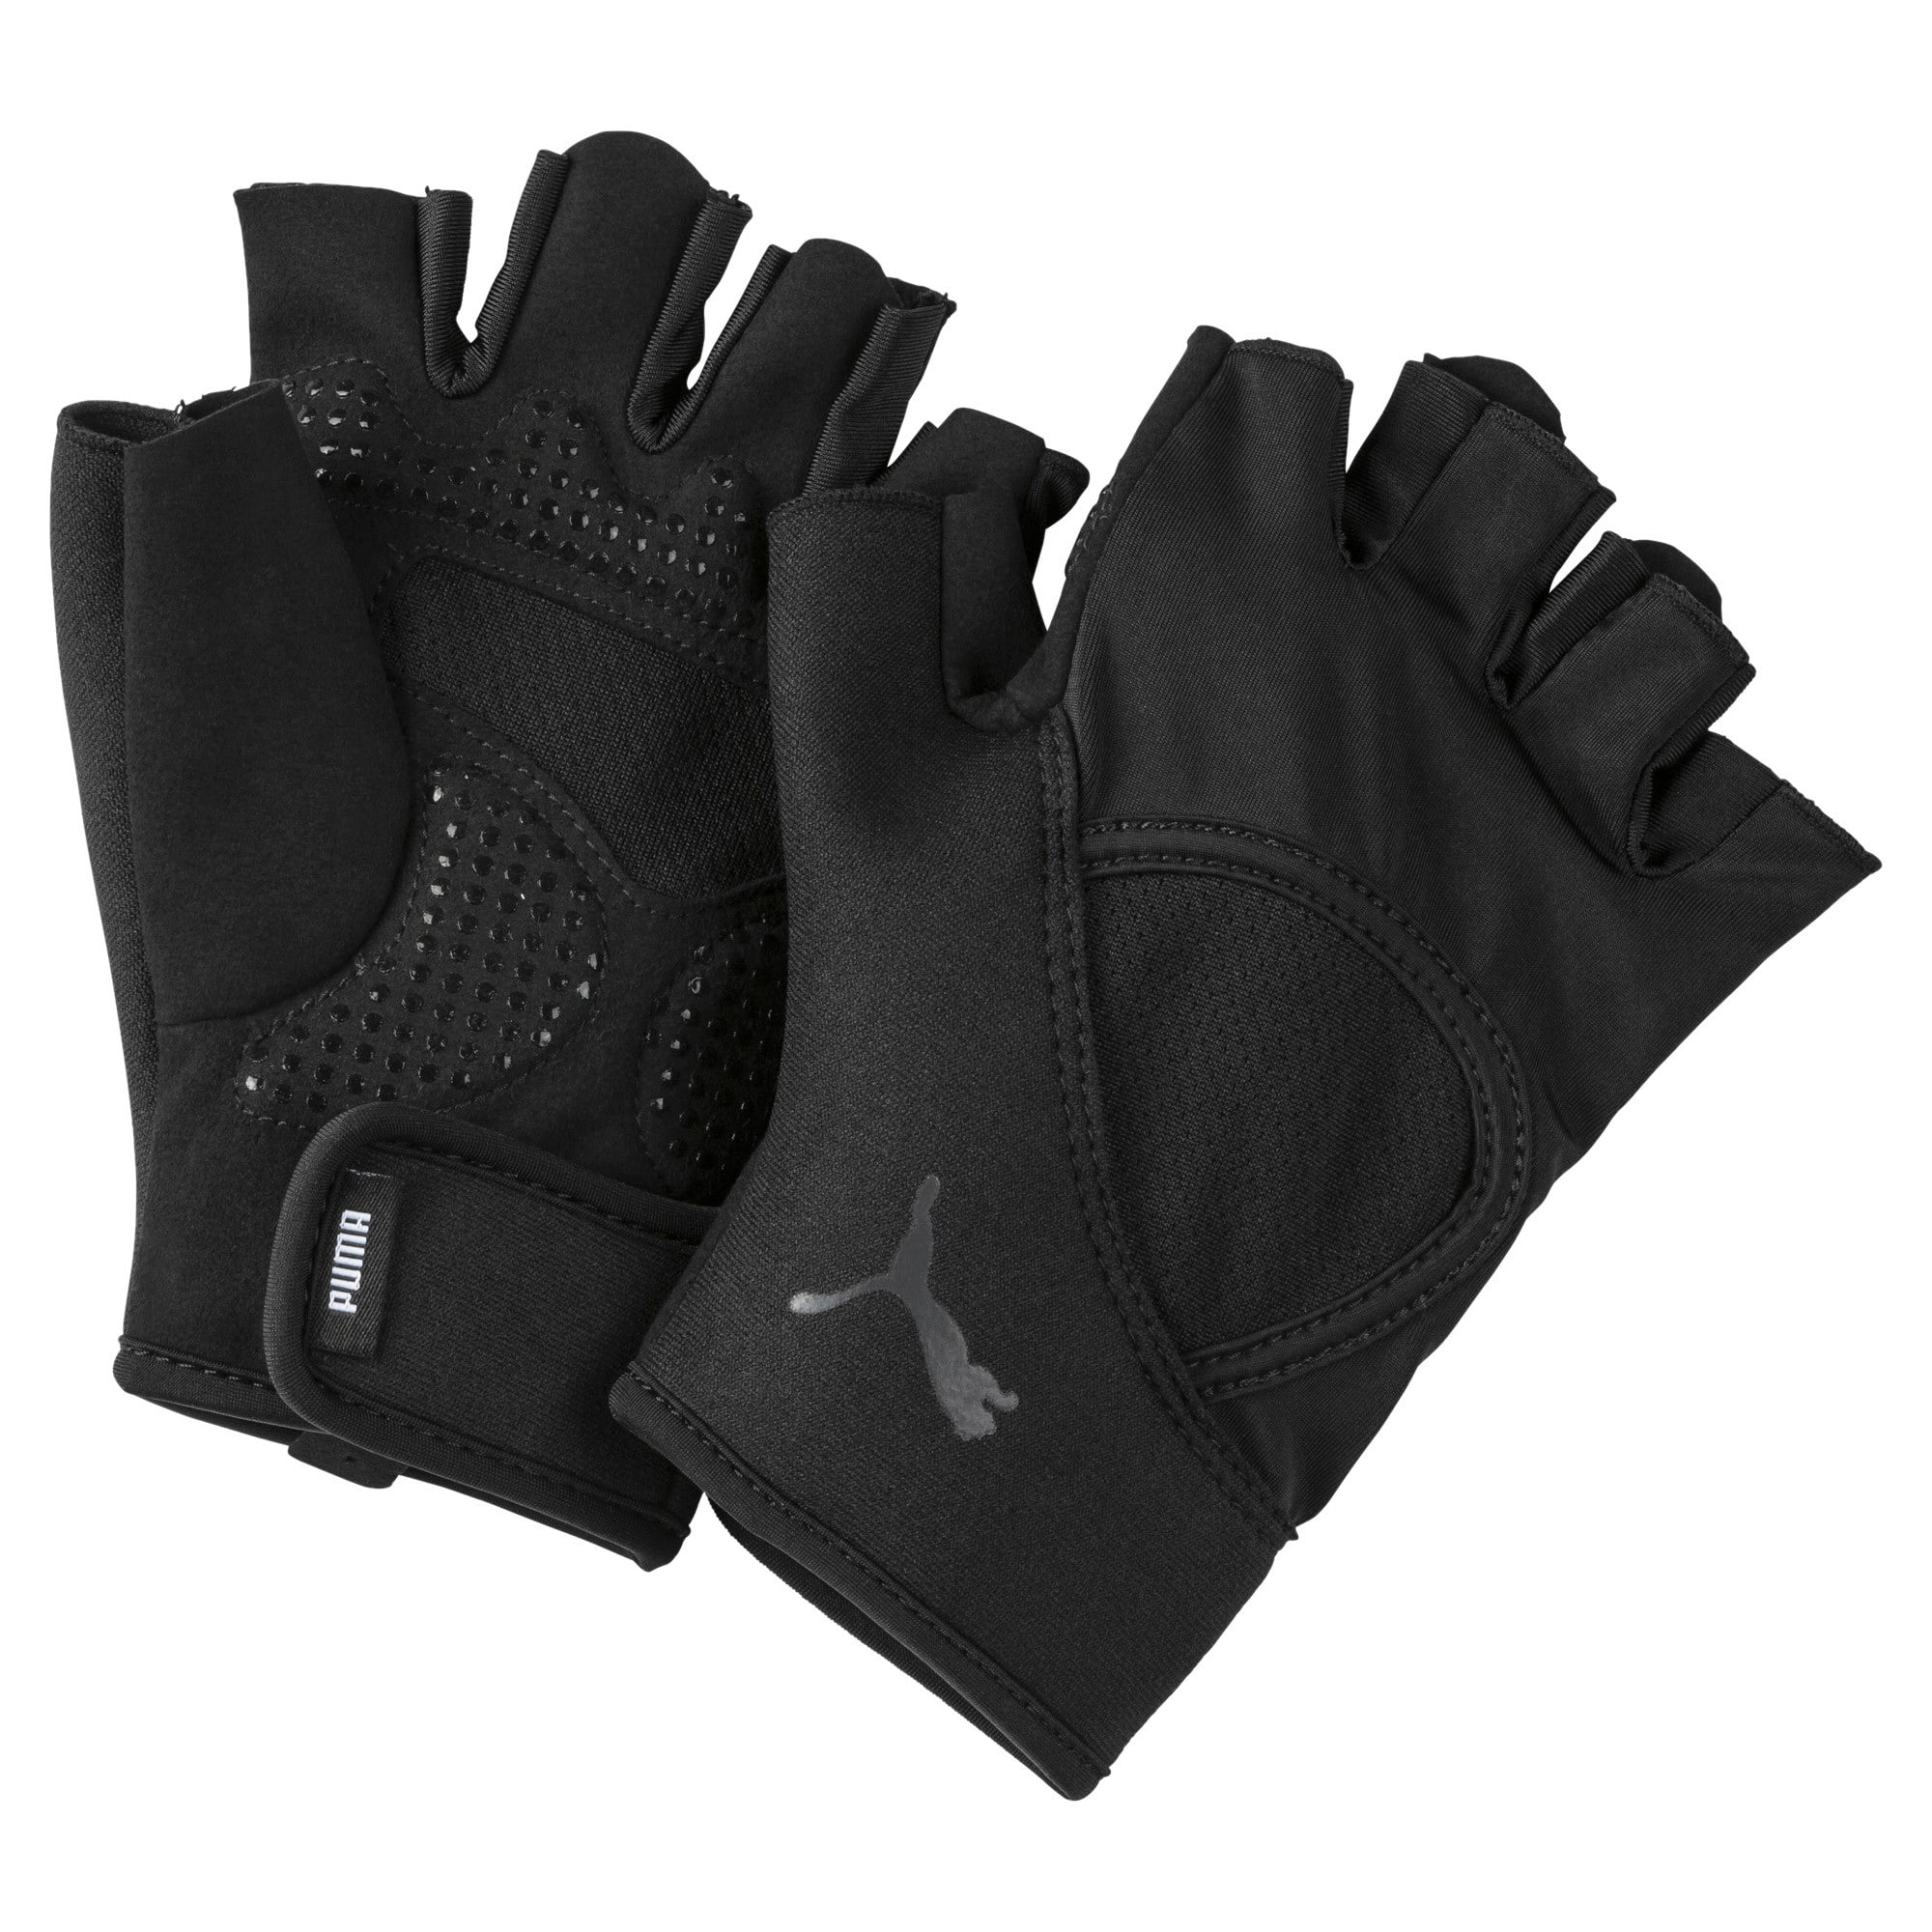 Thumbnail 1 of Essential Training Fingered Gloves, Puma Black, medium